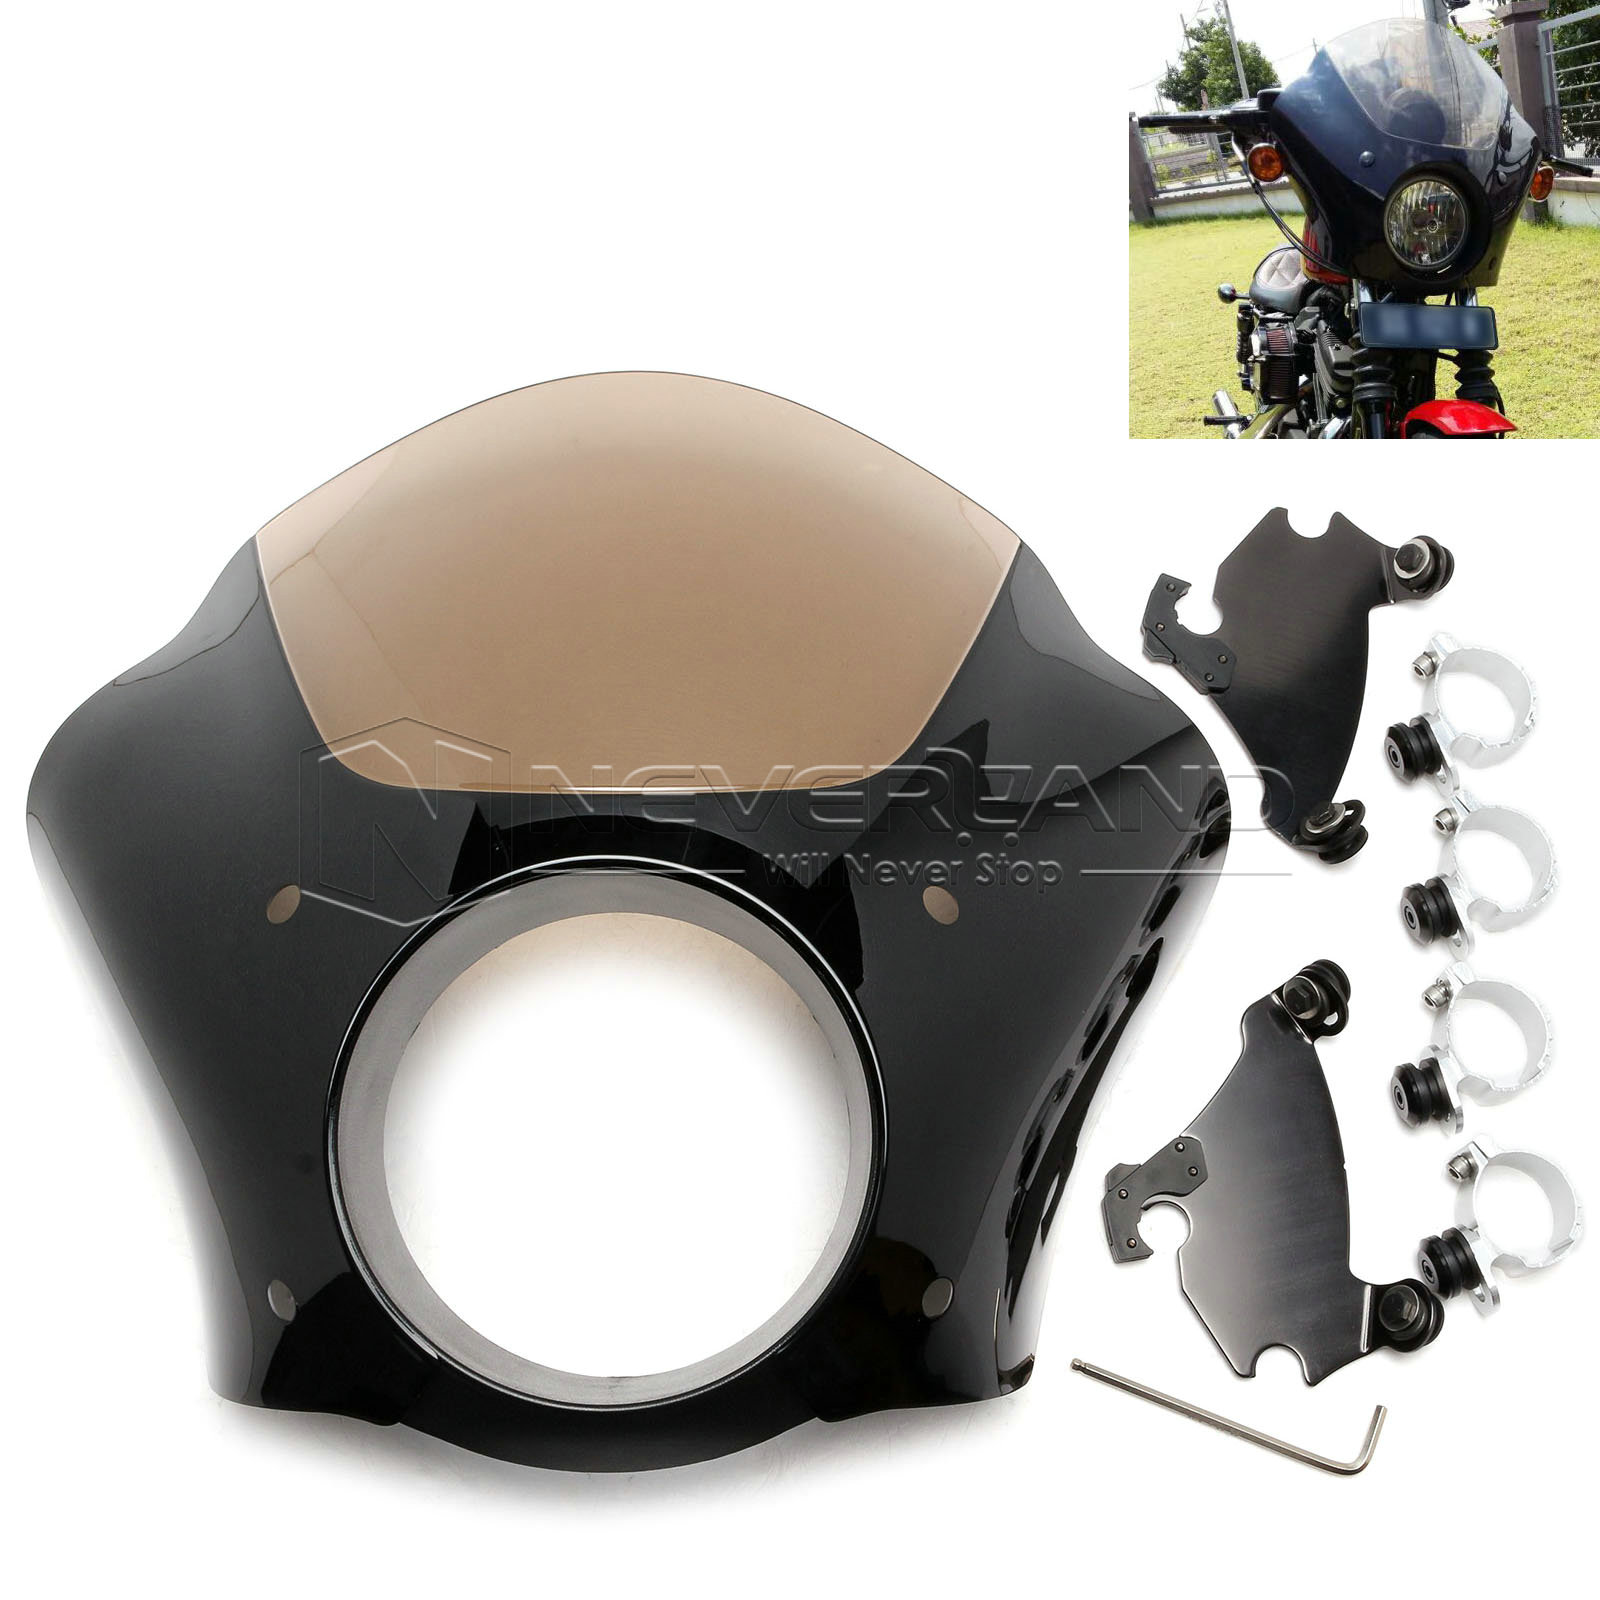 Black Gauntlet Headlight Fairing W/Trigger Lock Mount Kit For Harley XL 1200 883 Freeshipping D15 marz ron infinity gauntlet aftermath